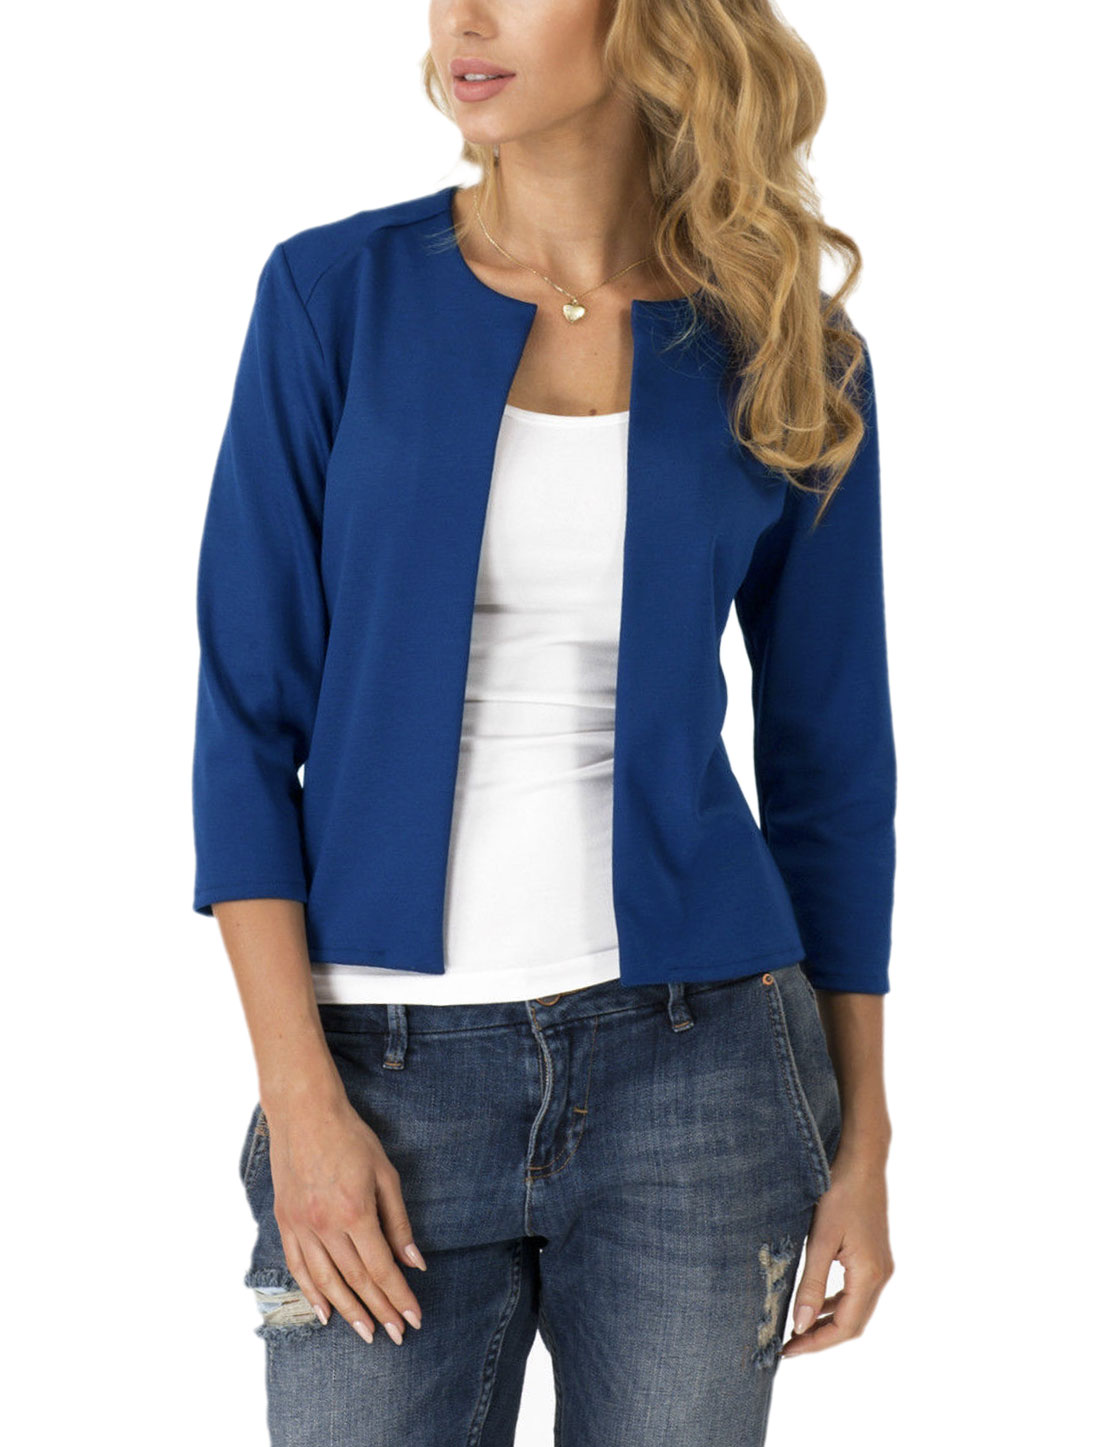 Women Three Quarter Sleeve Open Front Slim Fit Cardigan Royal Blue S